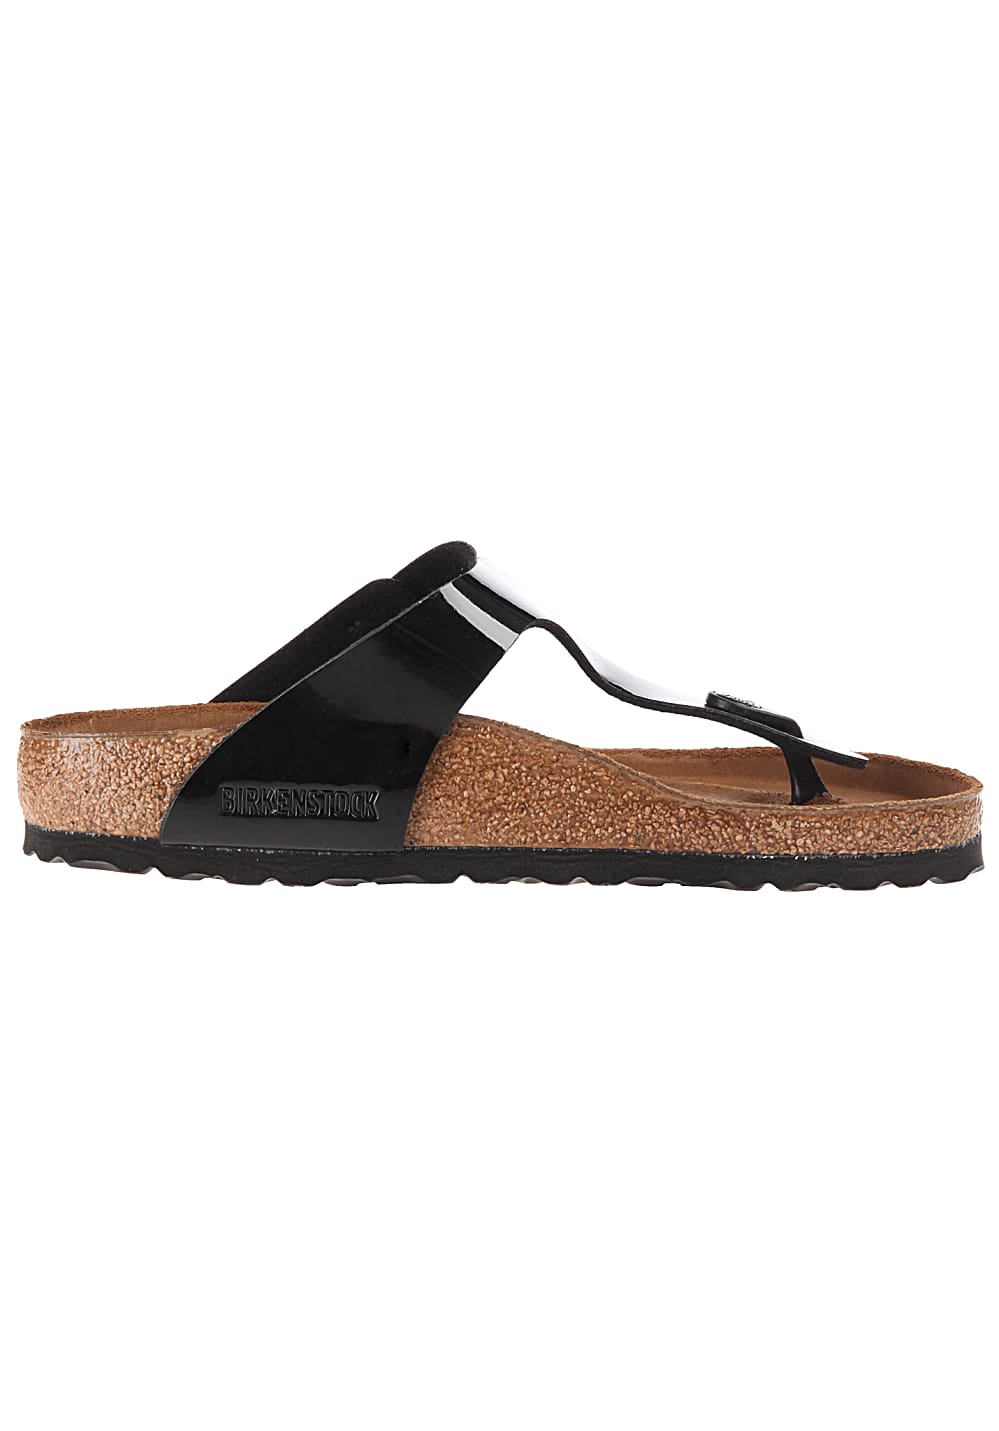 2f993ffed2a Next. Birkenstock. Gizeh BF - Sandals for Women. €62.47. incl. VAT plus  shipping costs. Size Chart